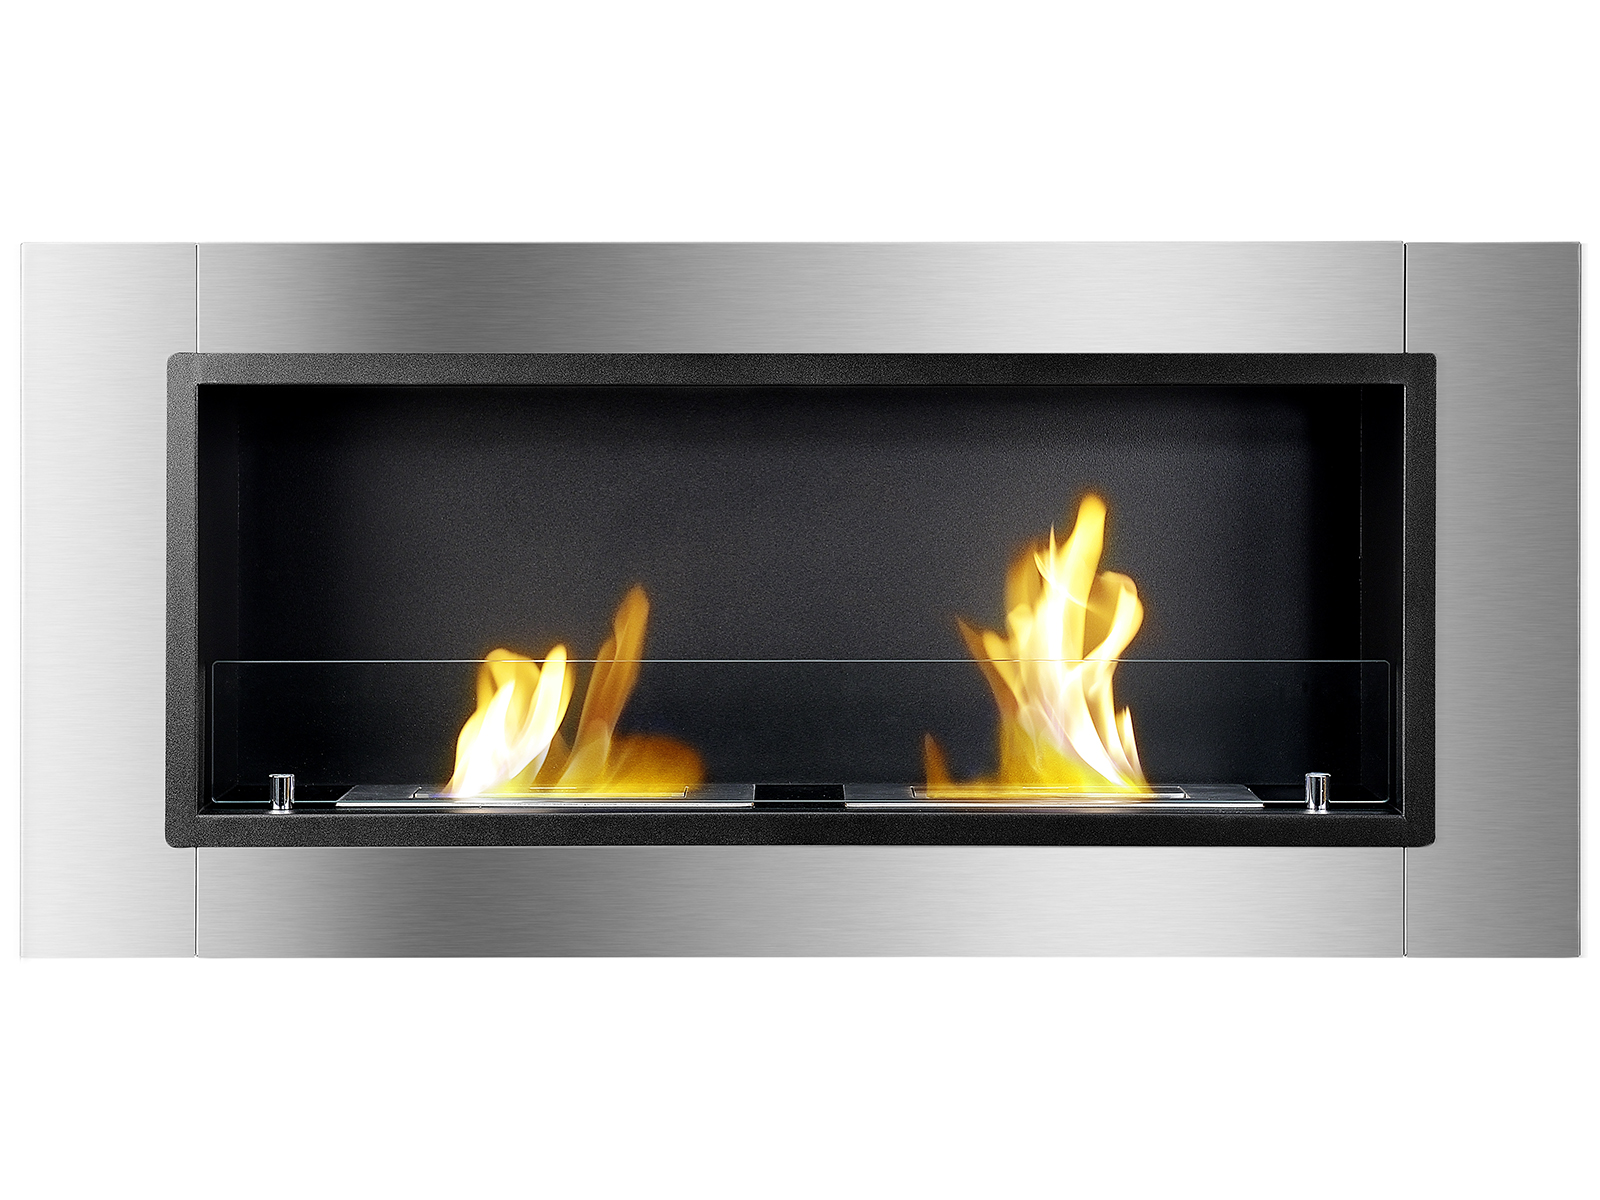 Lata Ventless Ethanol Fireplace with Flames Front View